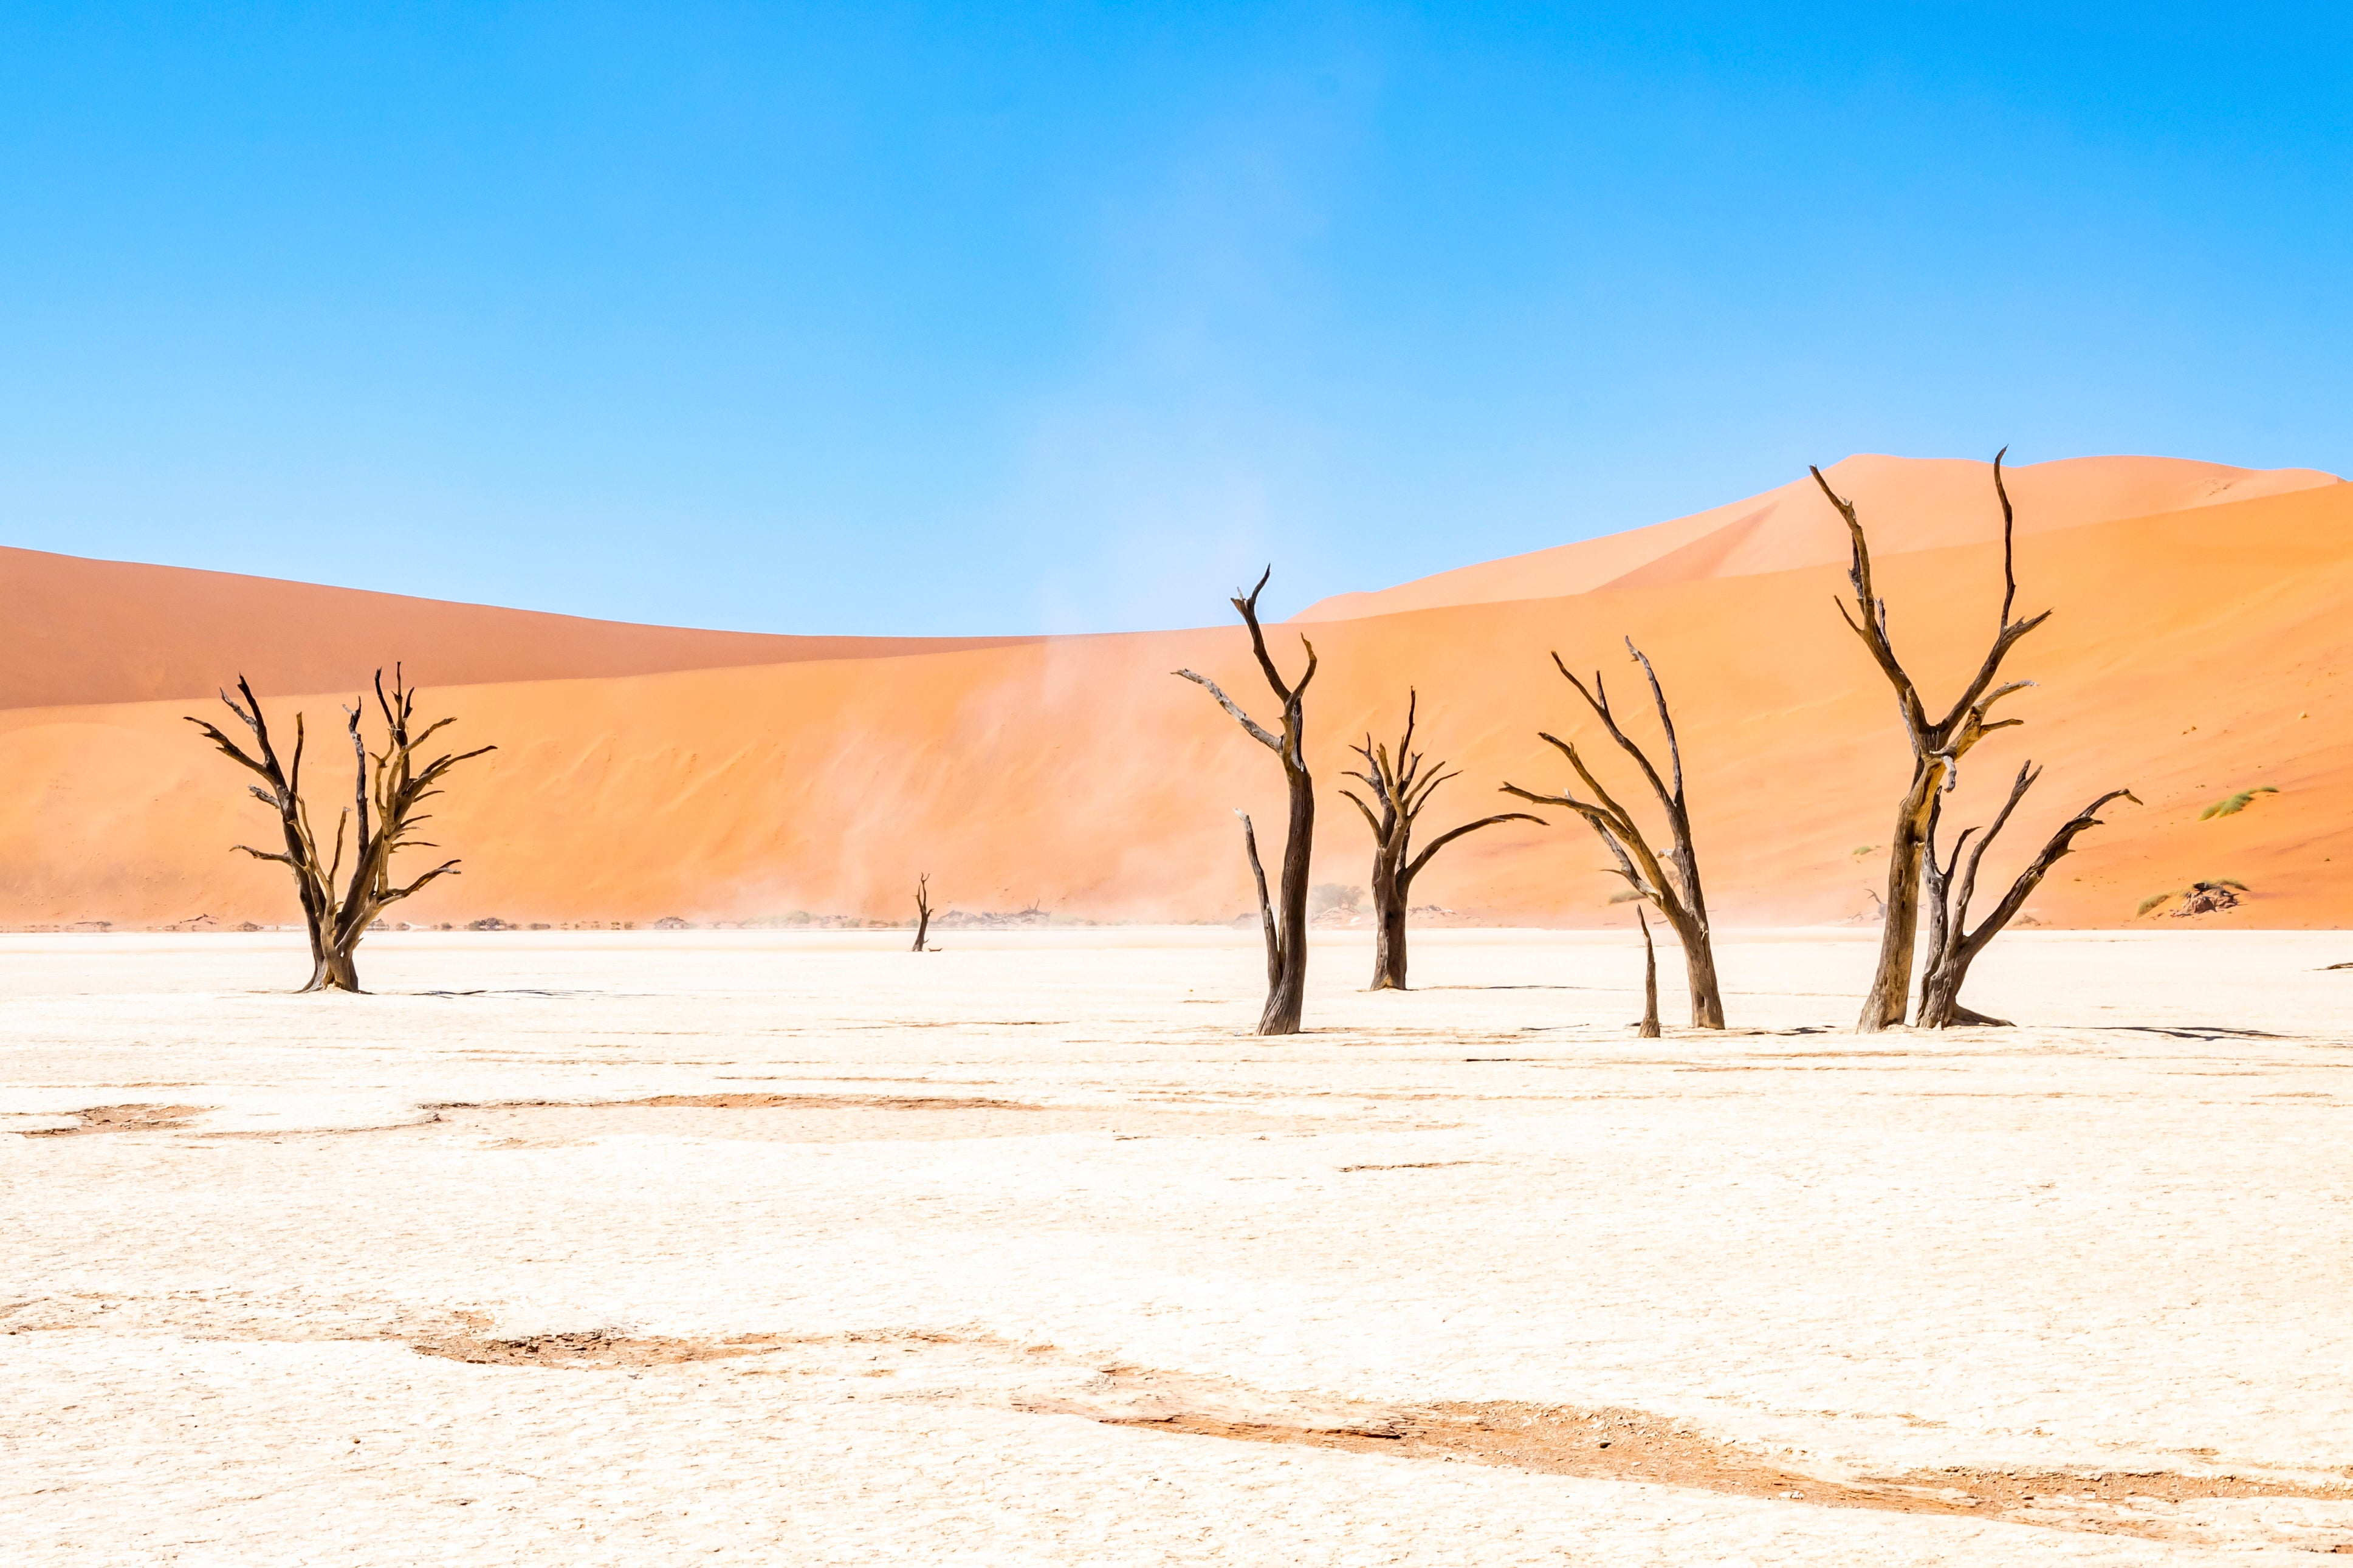 Namibian Dead Trees, Natures Perfect Landscape